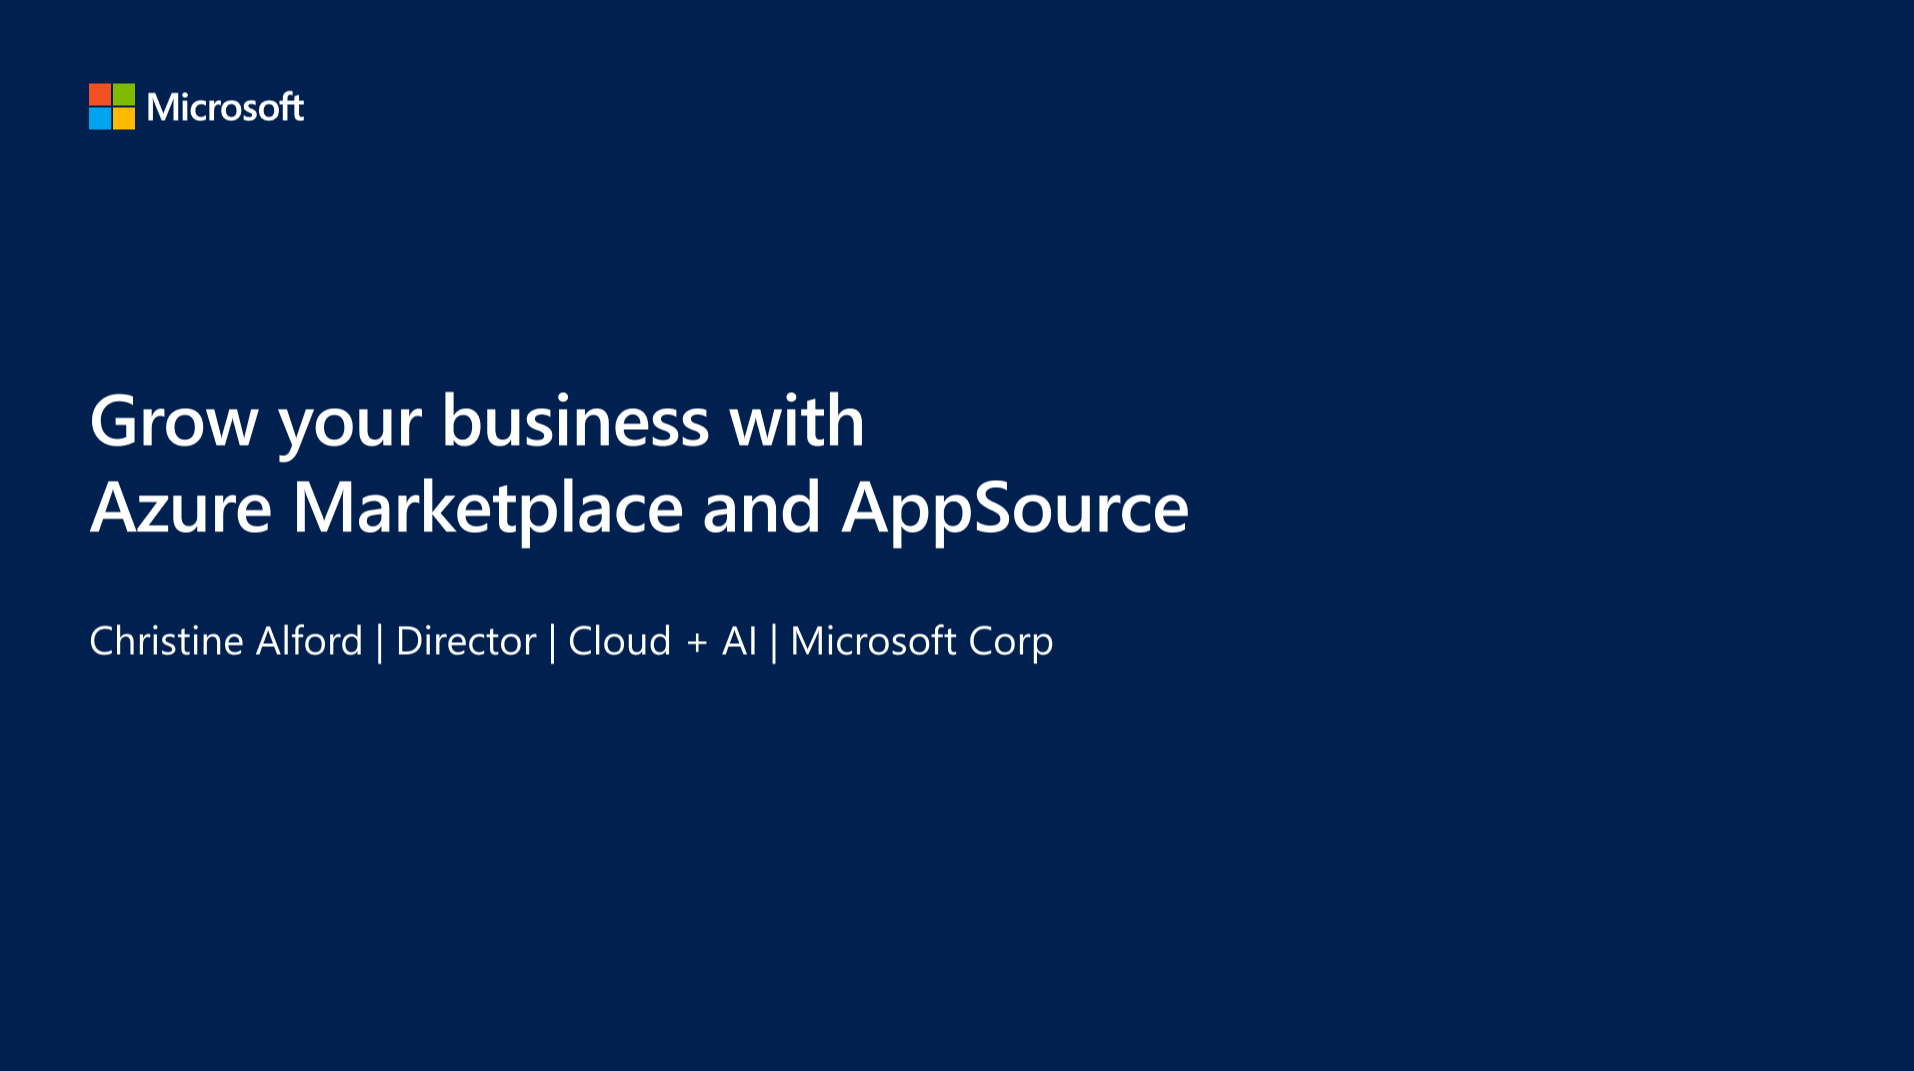 Grow Your Business with Azure Marketplace and AppSource